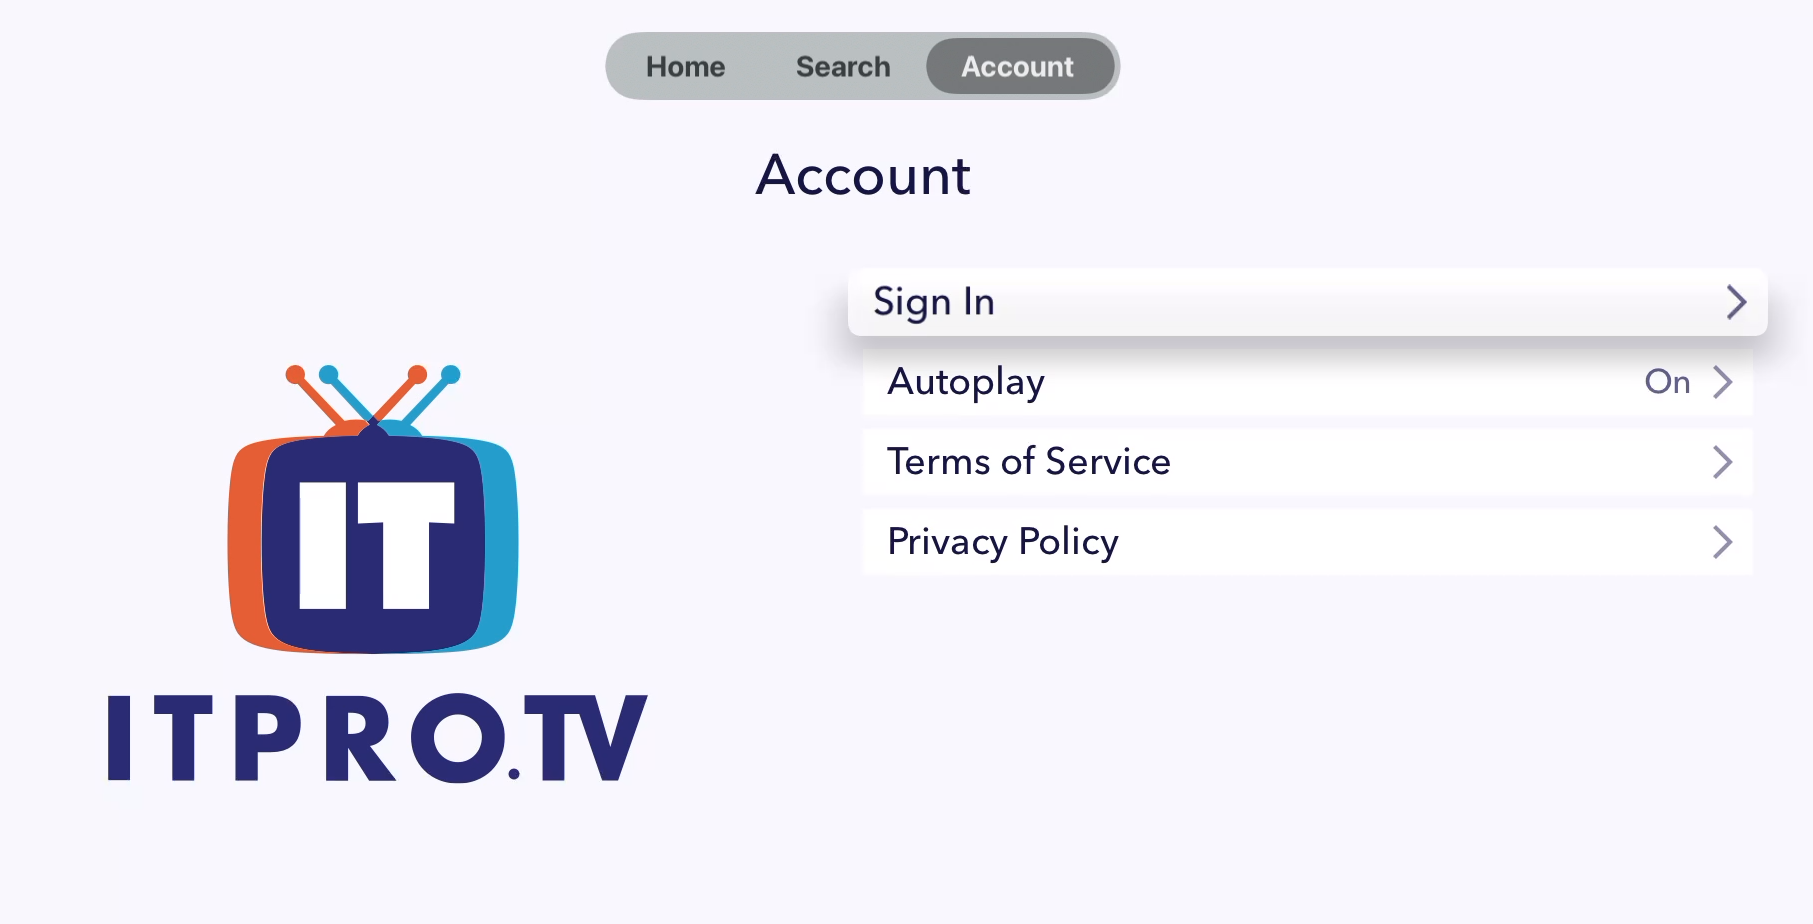 ITProTV AppleTV app Account Page, Sign In selected